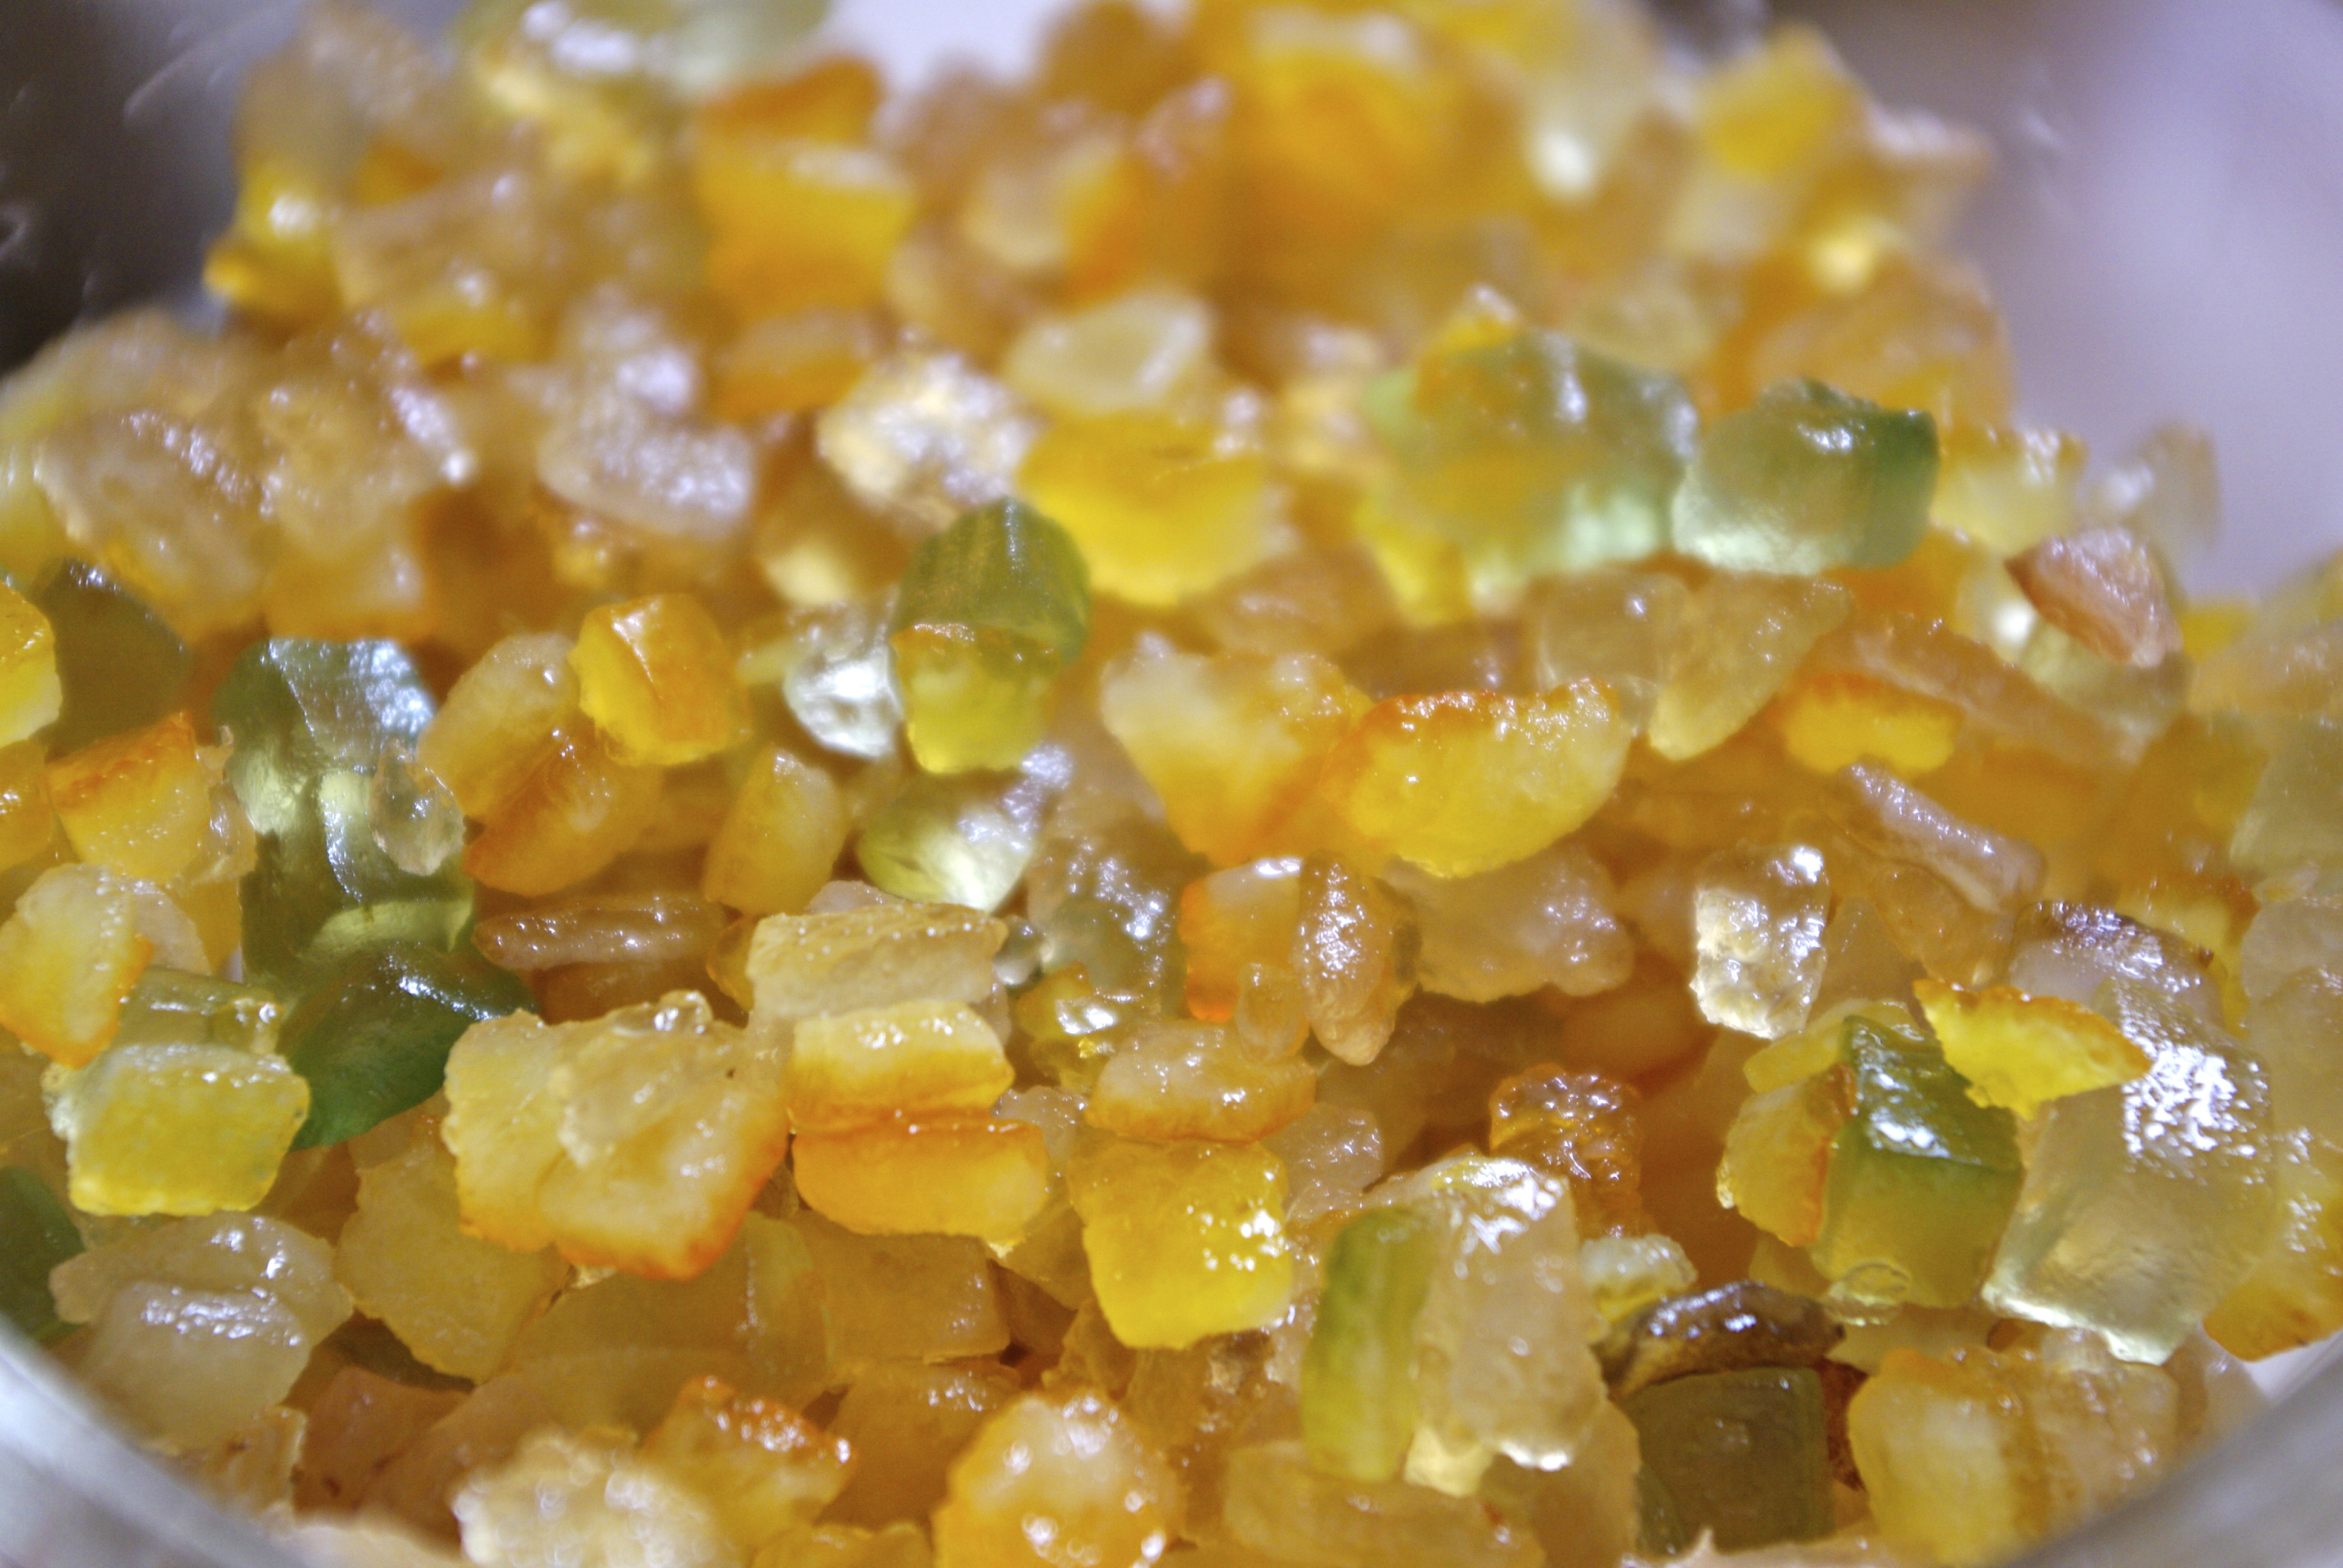 mixed candied peel from King Arthur Flour glistens with goodness